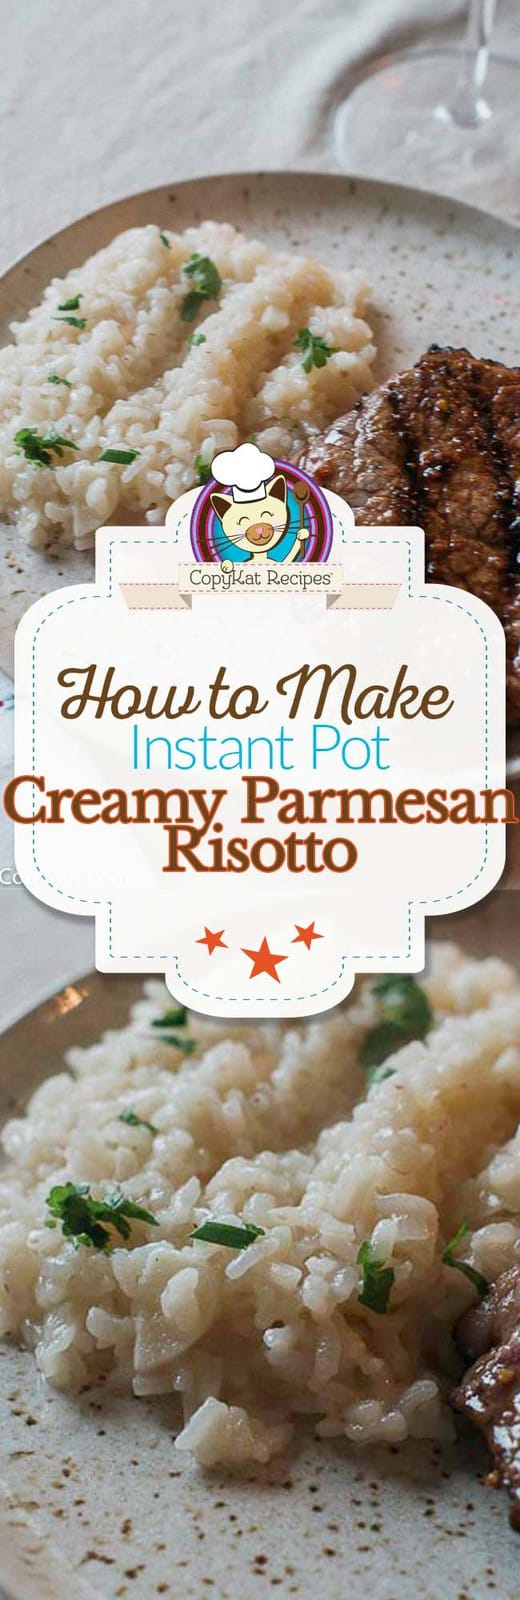 Make delicious creamy risotto in the Instant Pot, it is completely effortless to make risotto in a pressure cooker. #instantpot #risotto #Parmesan #pressurecooker